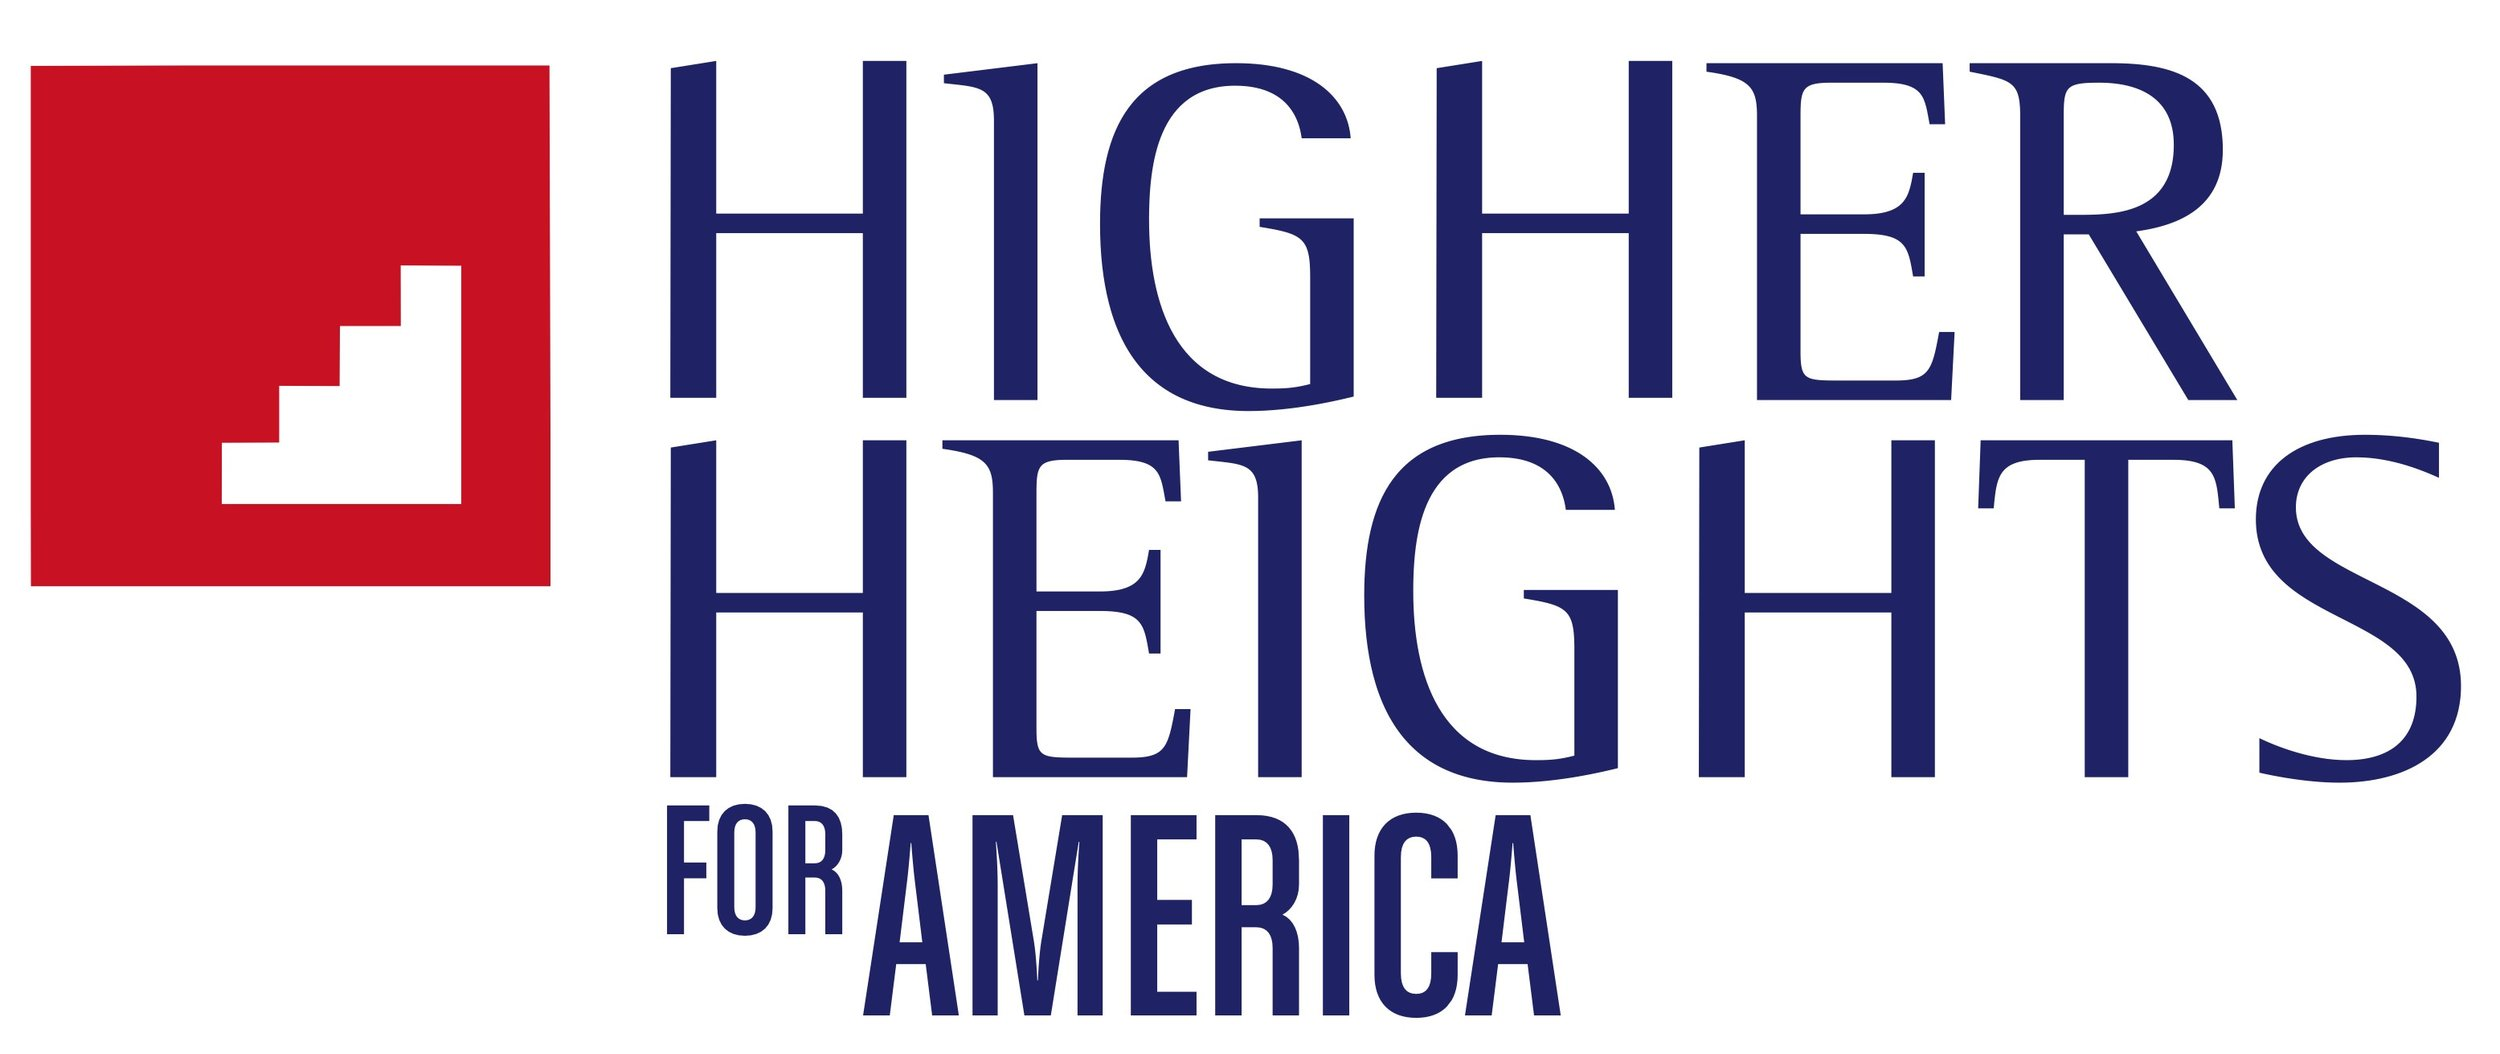 Higher Heights for America.jpg